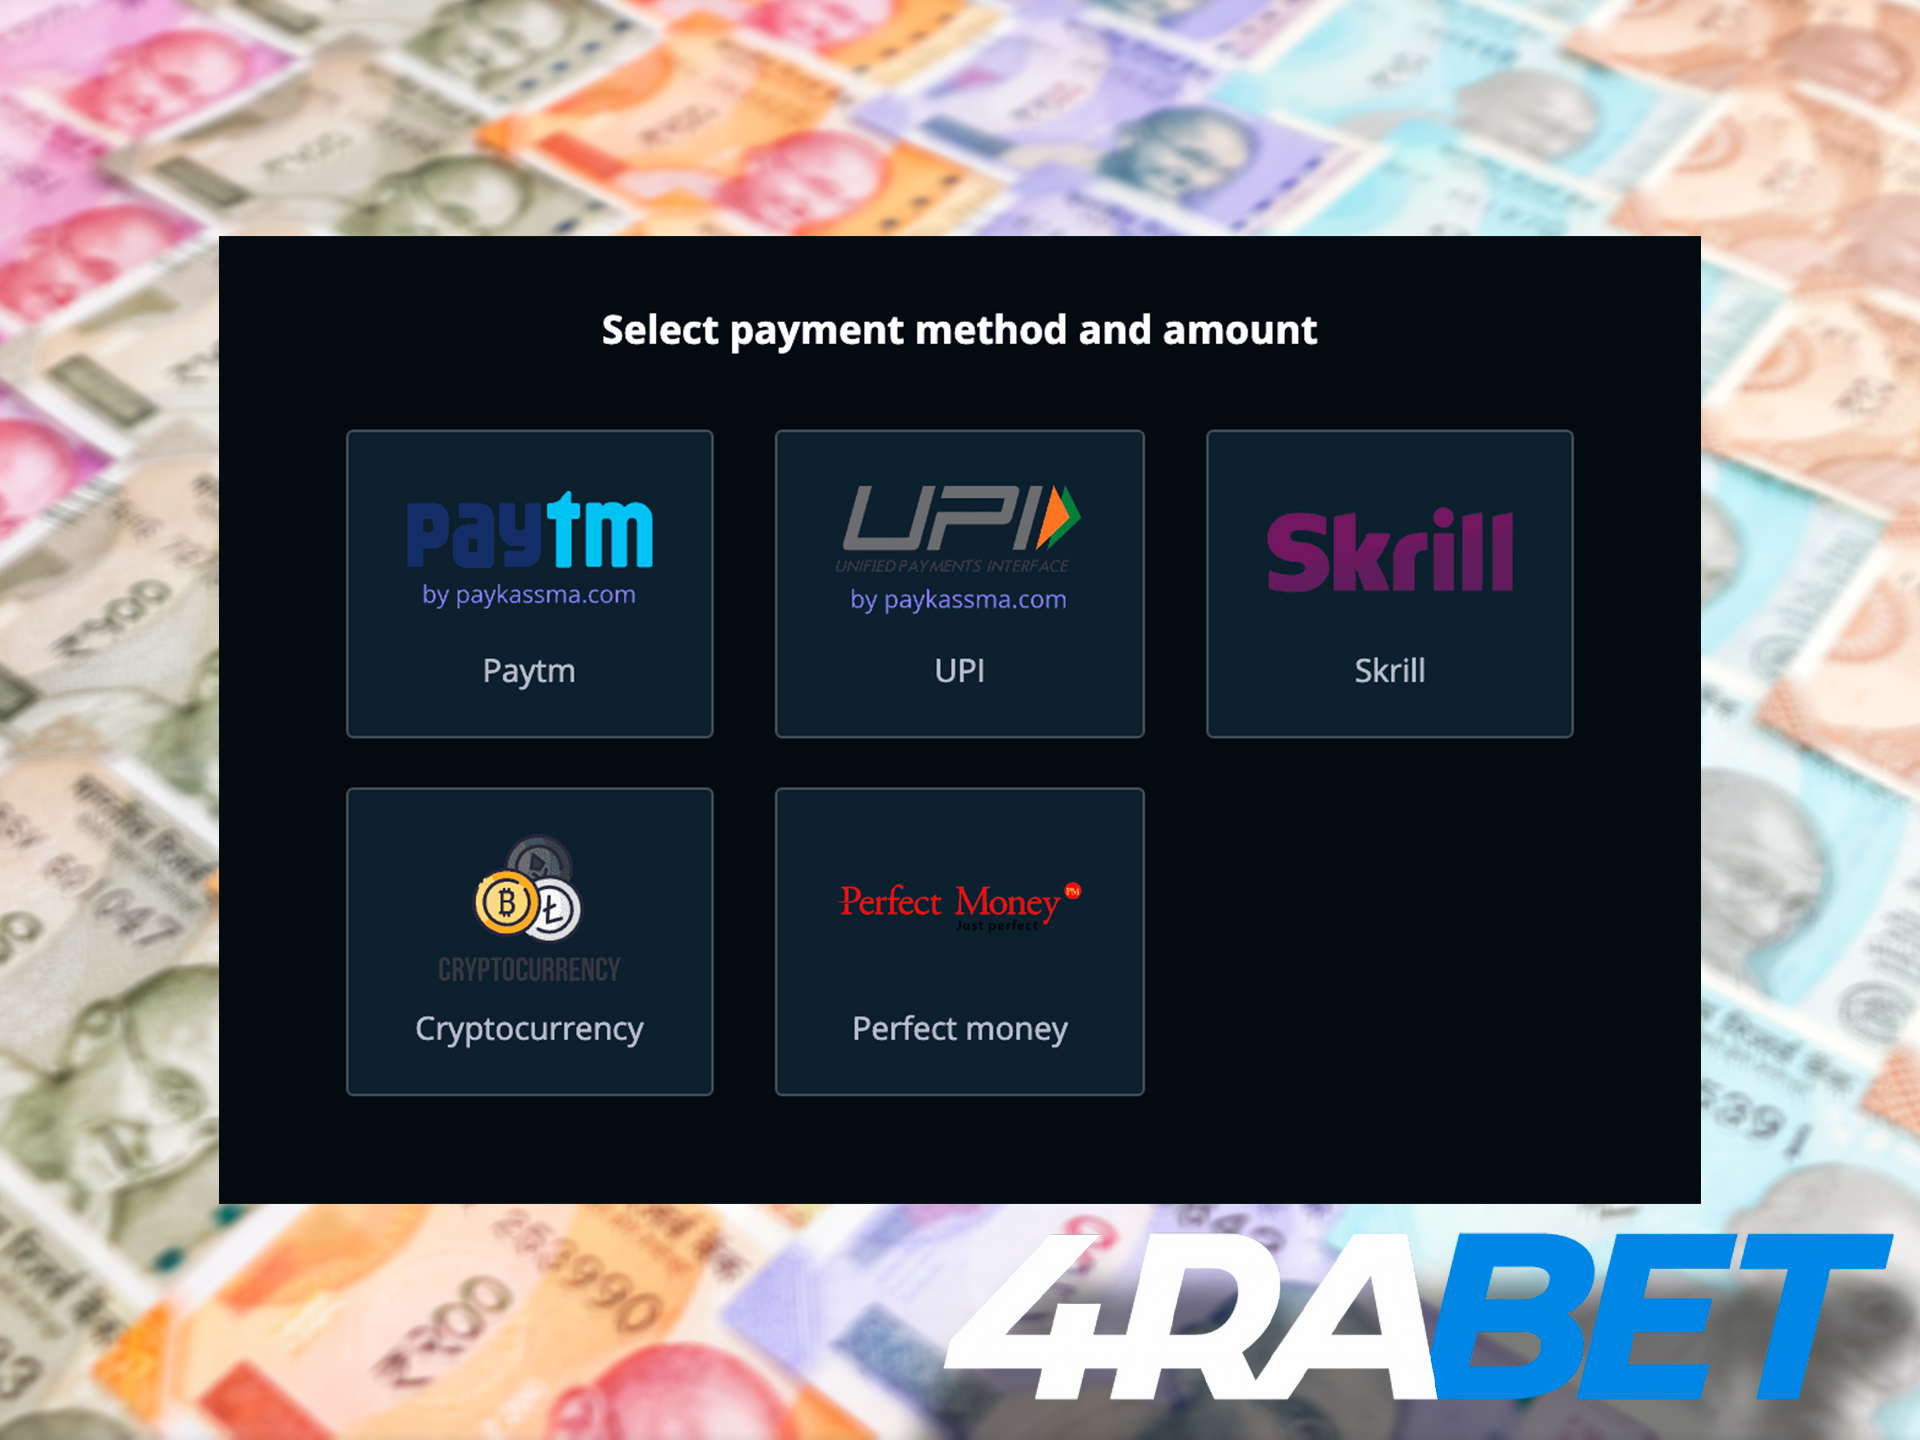 4rabet offers all the popular Indian payment methods to make deposits and withdrawals.